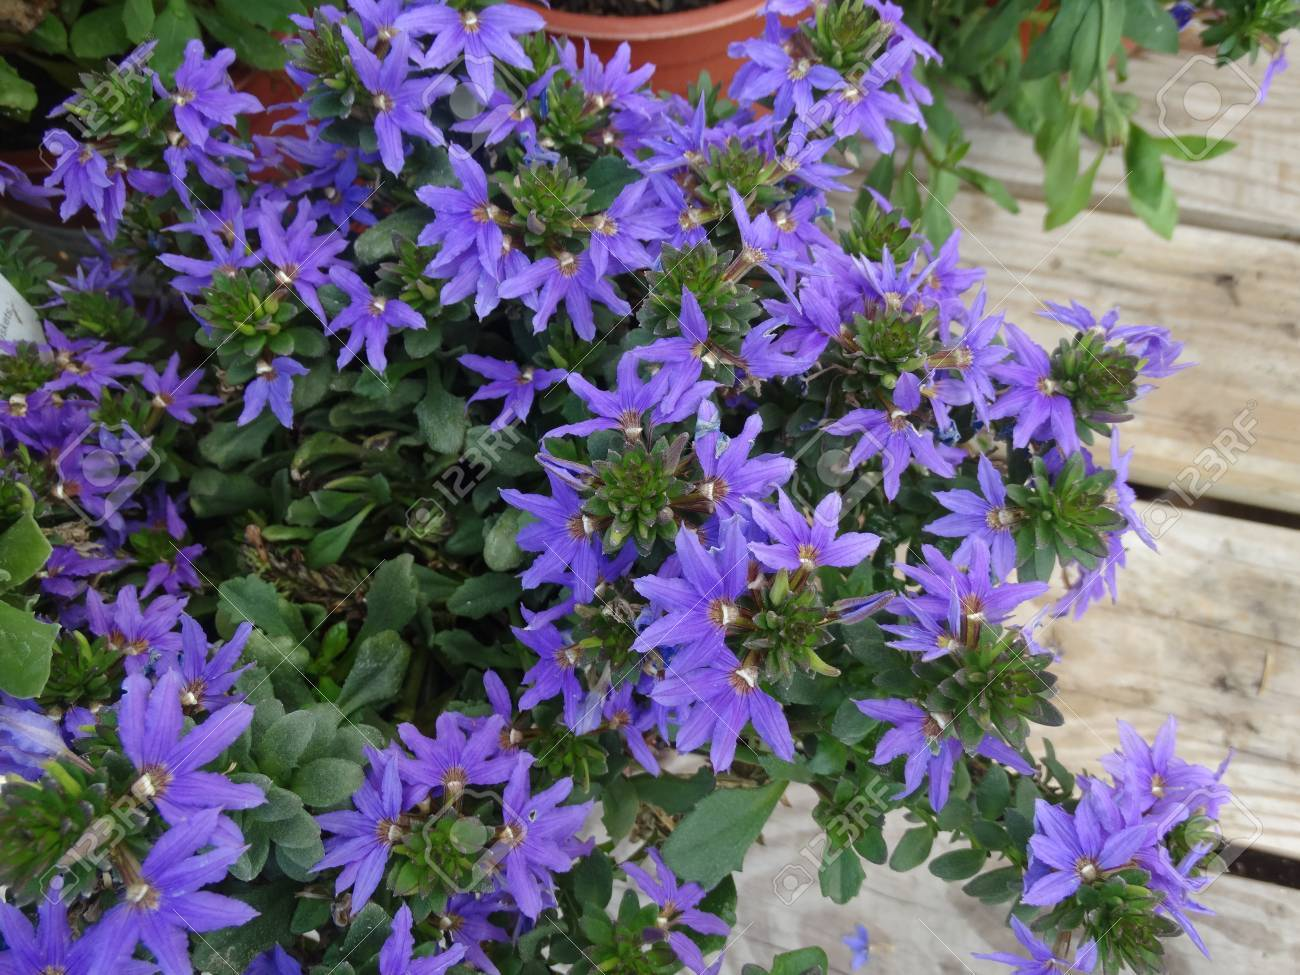 Scaevola aemula top pot blue top pot blue scaevola perennial scaevola aemula top pot blue top pot blue scaevola perennial herb with mounding spreading izmirmasajfo